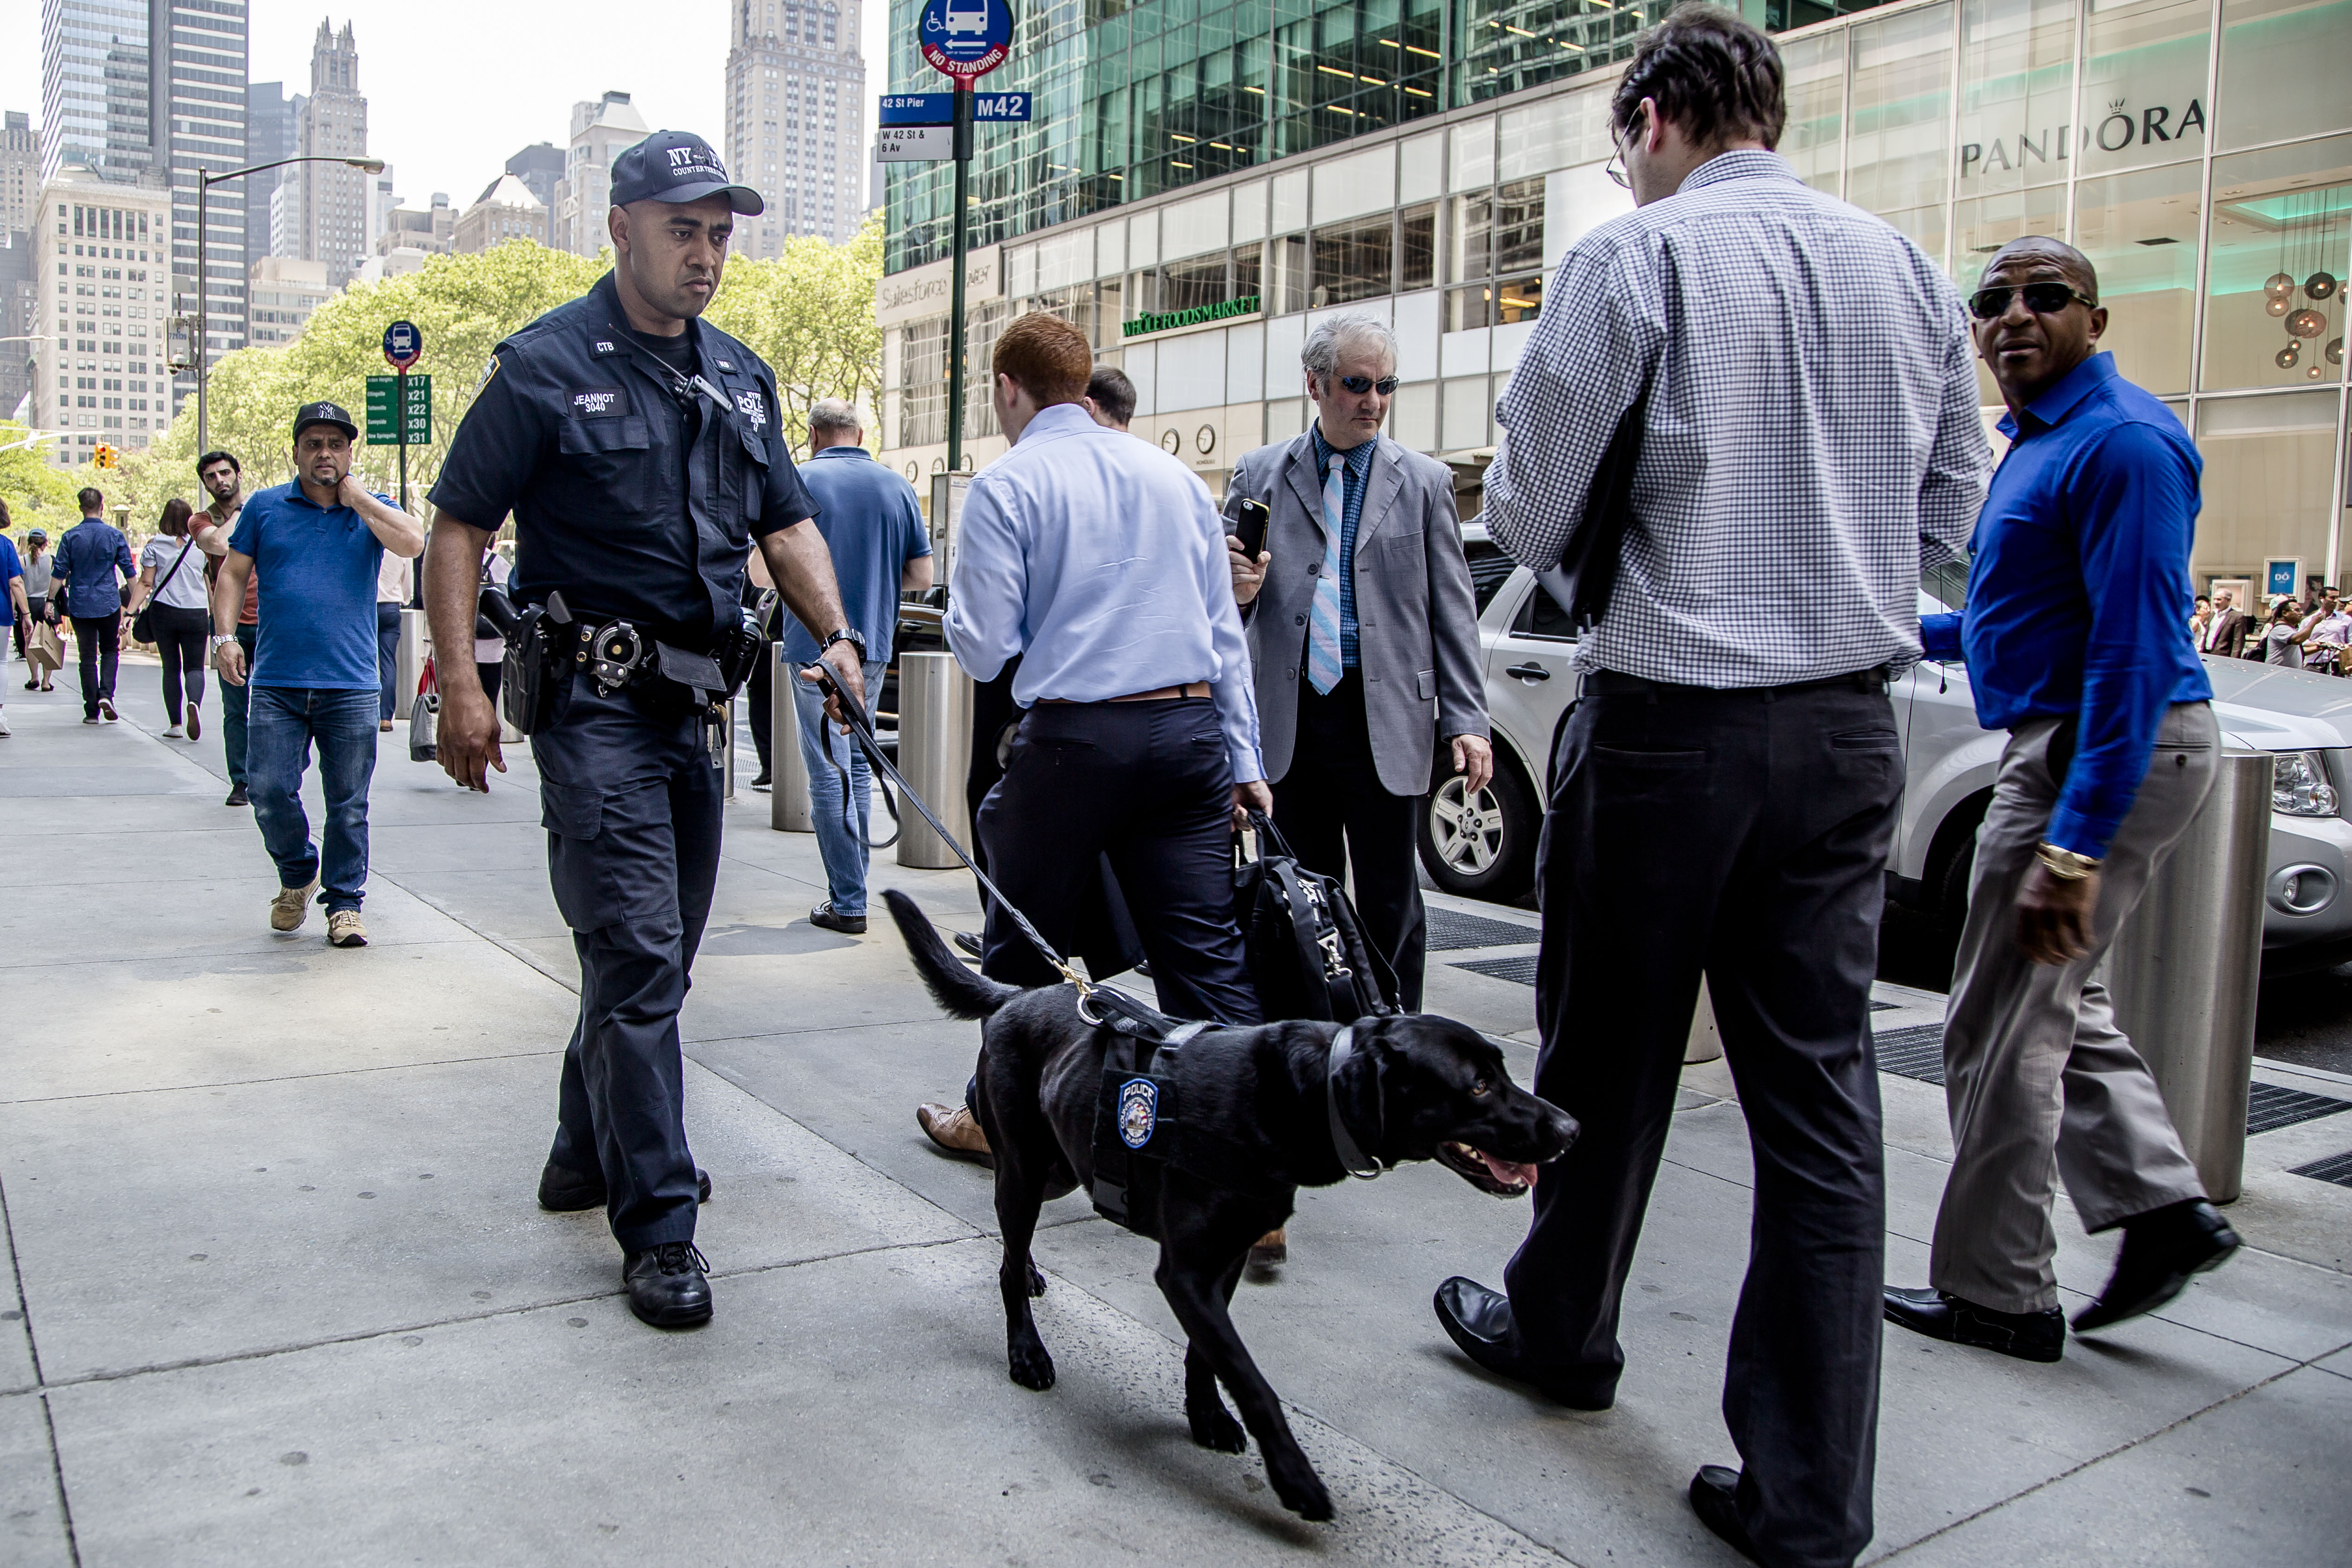 An NYPD officer with his K-9 unit inspects the area near where a vehicle struck pedestrians and crashed in Times Square, New York, on May 18, 2017. (Samira Bouaou/The Epoch Times)